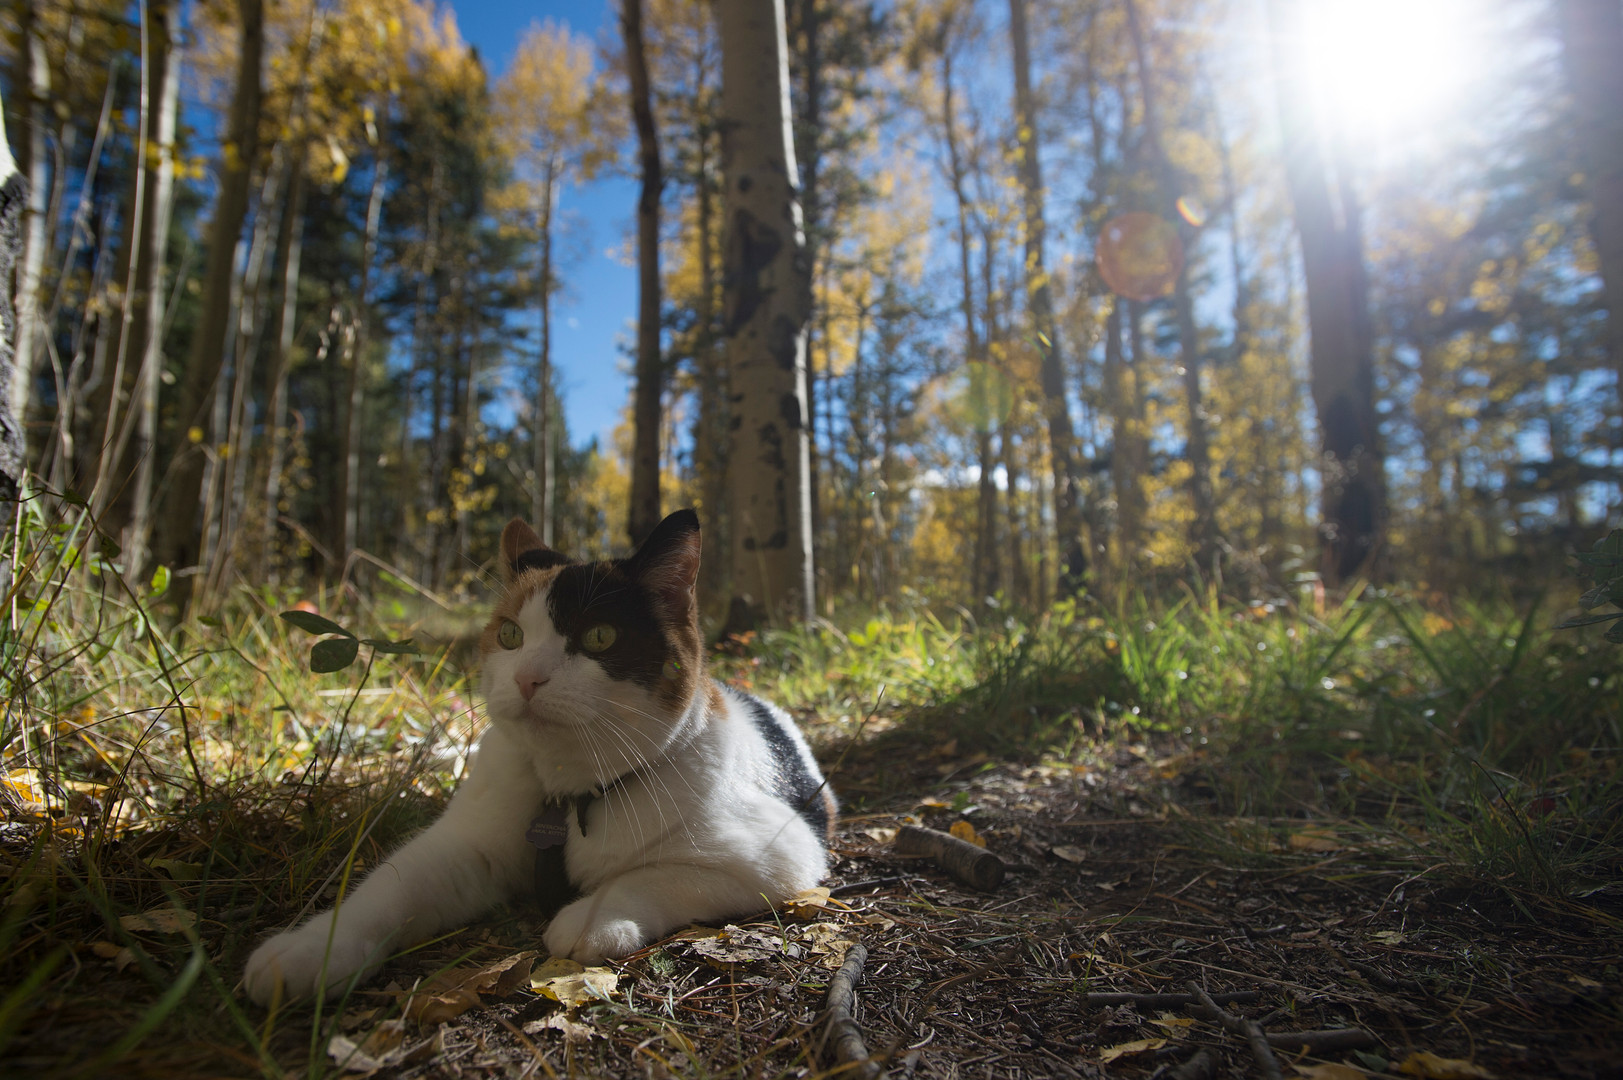 SinTacha the cat rests under a canopy of fall colors near Kenosha Pass on Thursday, September 21, 2017. SinTacha's owners brought the feline into the aspen grove for a photo shoot.